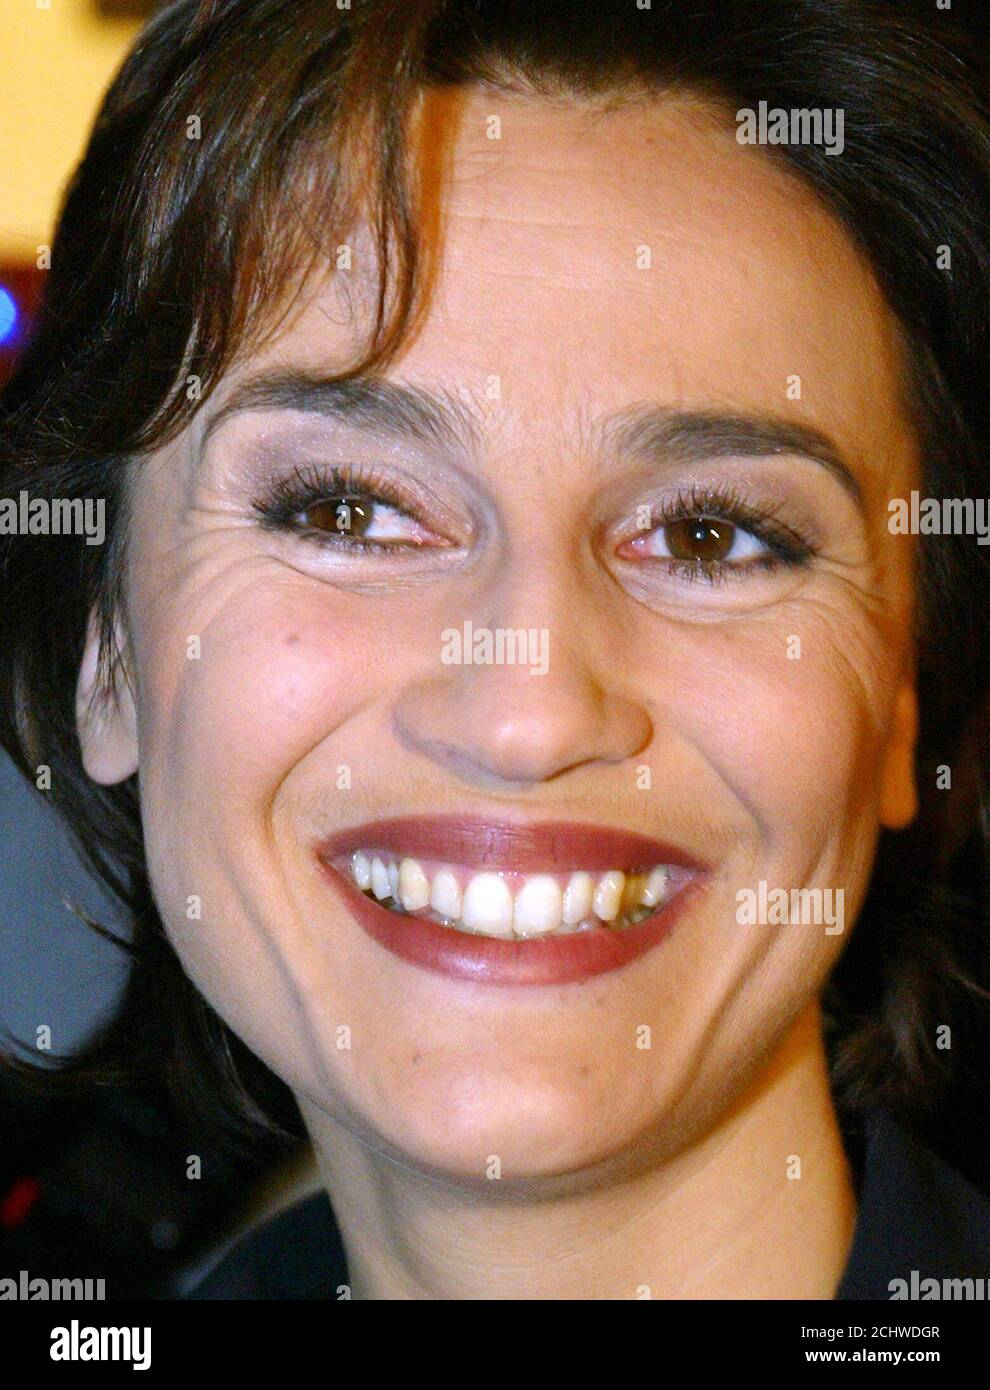 Sandra Maischberger, German television presenter from the NTV broadcasting station looks on during a reception in Berlin January 20, 2003. Maischberger attended a celebration for the 65th birthday of Paul Spiegel, president of the German Jew Council. REUTERS/Fabrizio Bensch  FAB/GB Stock Photo